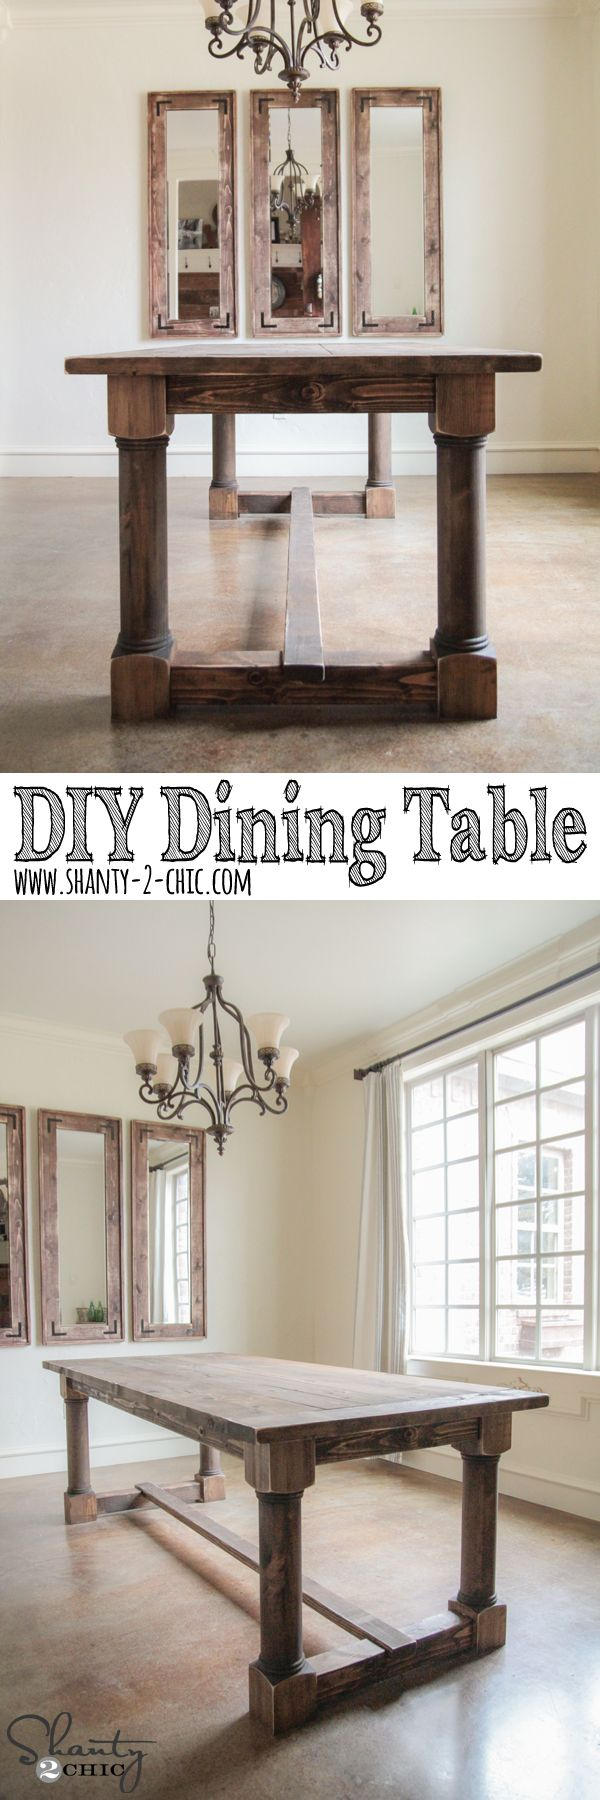 Love this DIY Dining Table!  Free plans and tutorial at www.shanty-2-chic.com